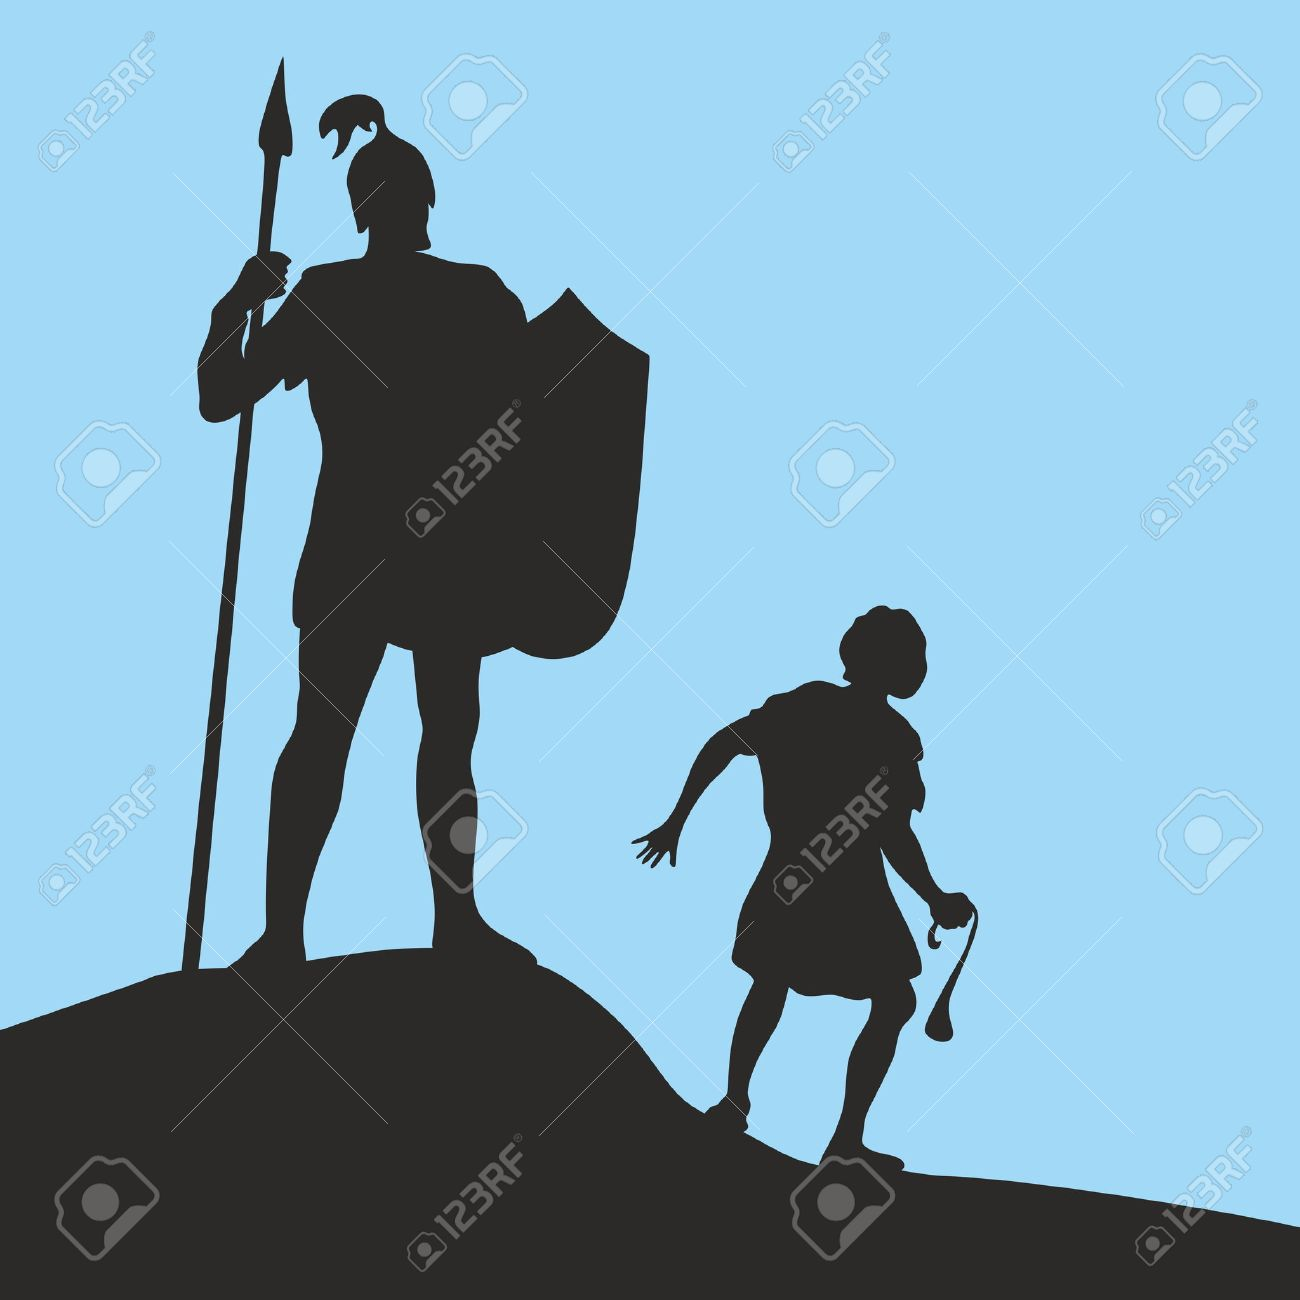 148 david and goliath stock vector illustration and royalty free